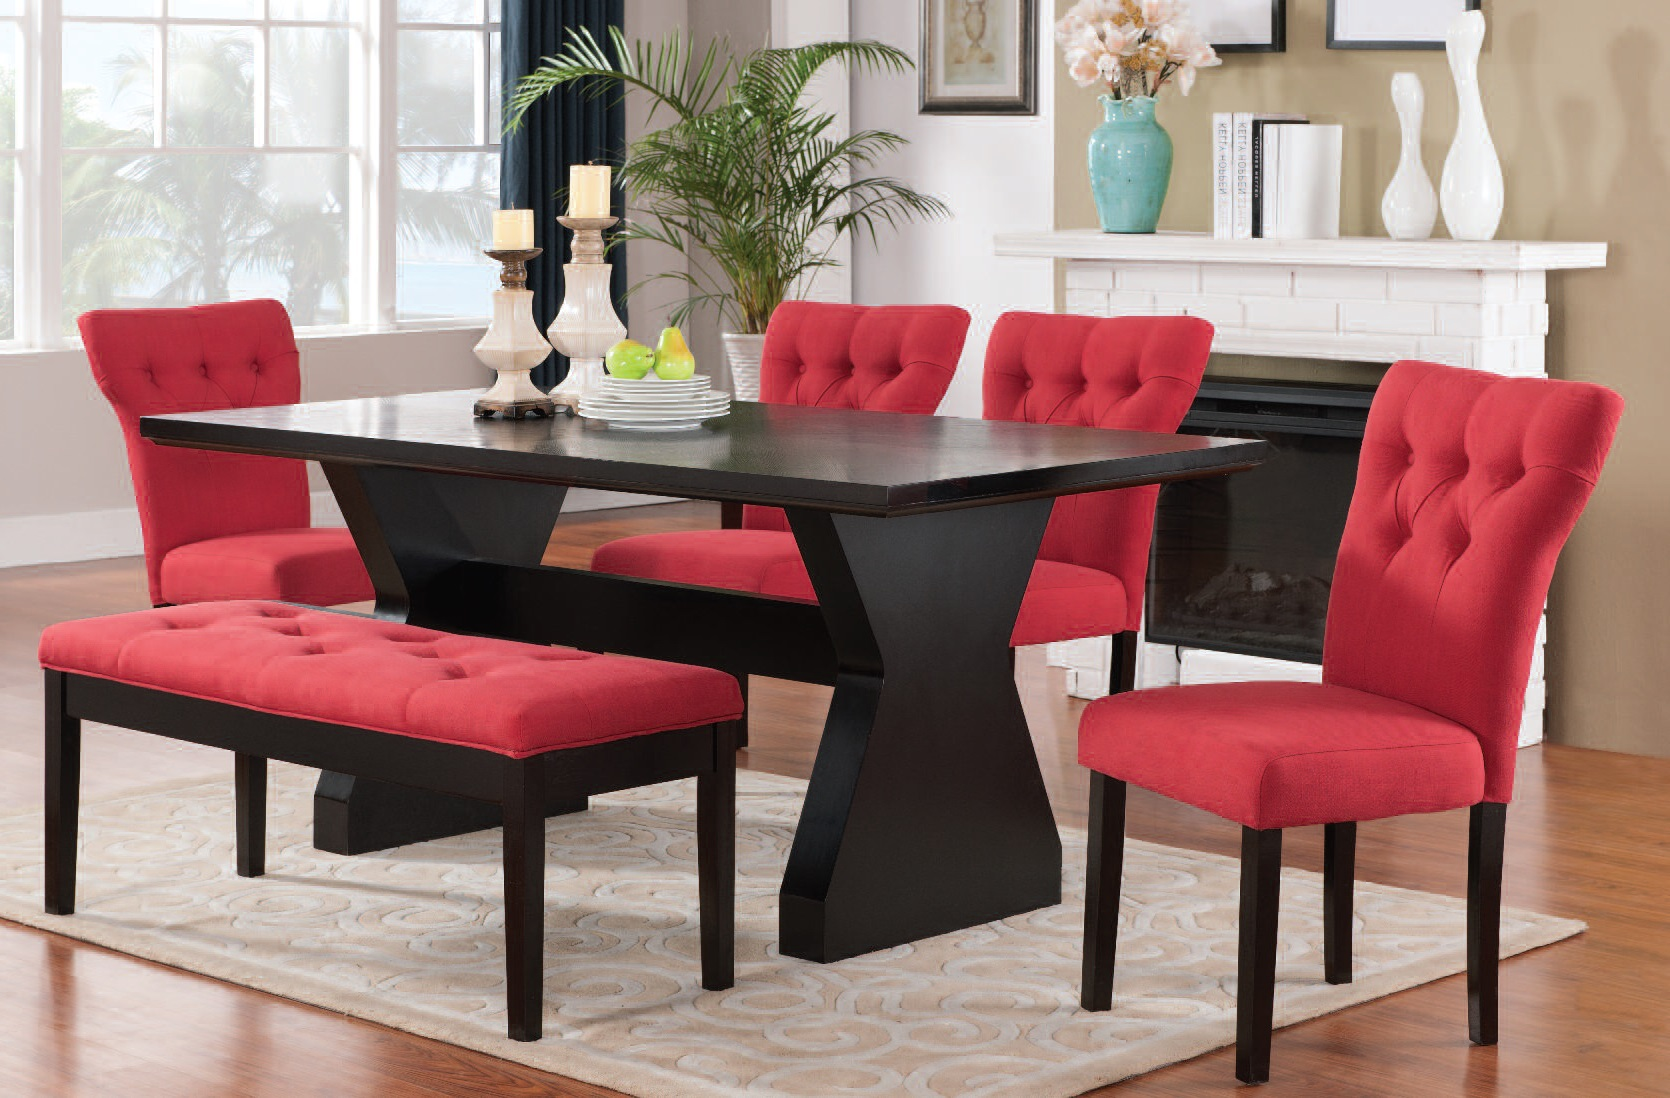 Effie Red Fabric Walnut Espresso Wood 6pc Dining Room Set Click To Enlarge Loading